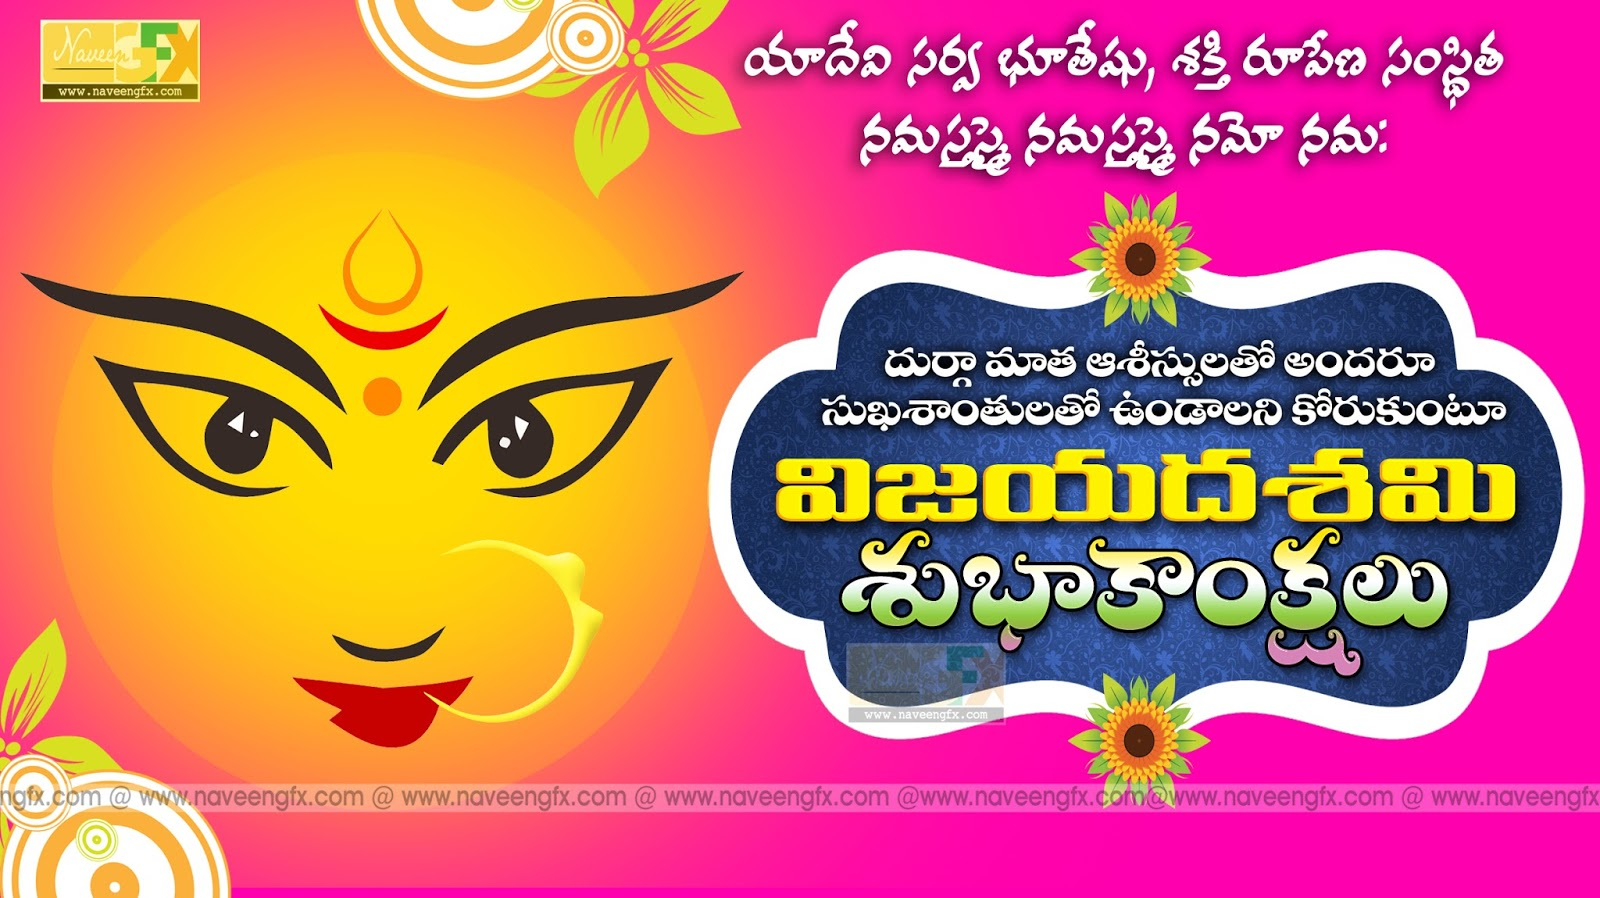 Happy dussehra 2017 images wishes sms quotes cards messages dasami44 kristyandbryce Images